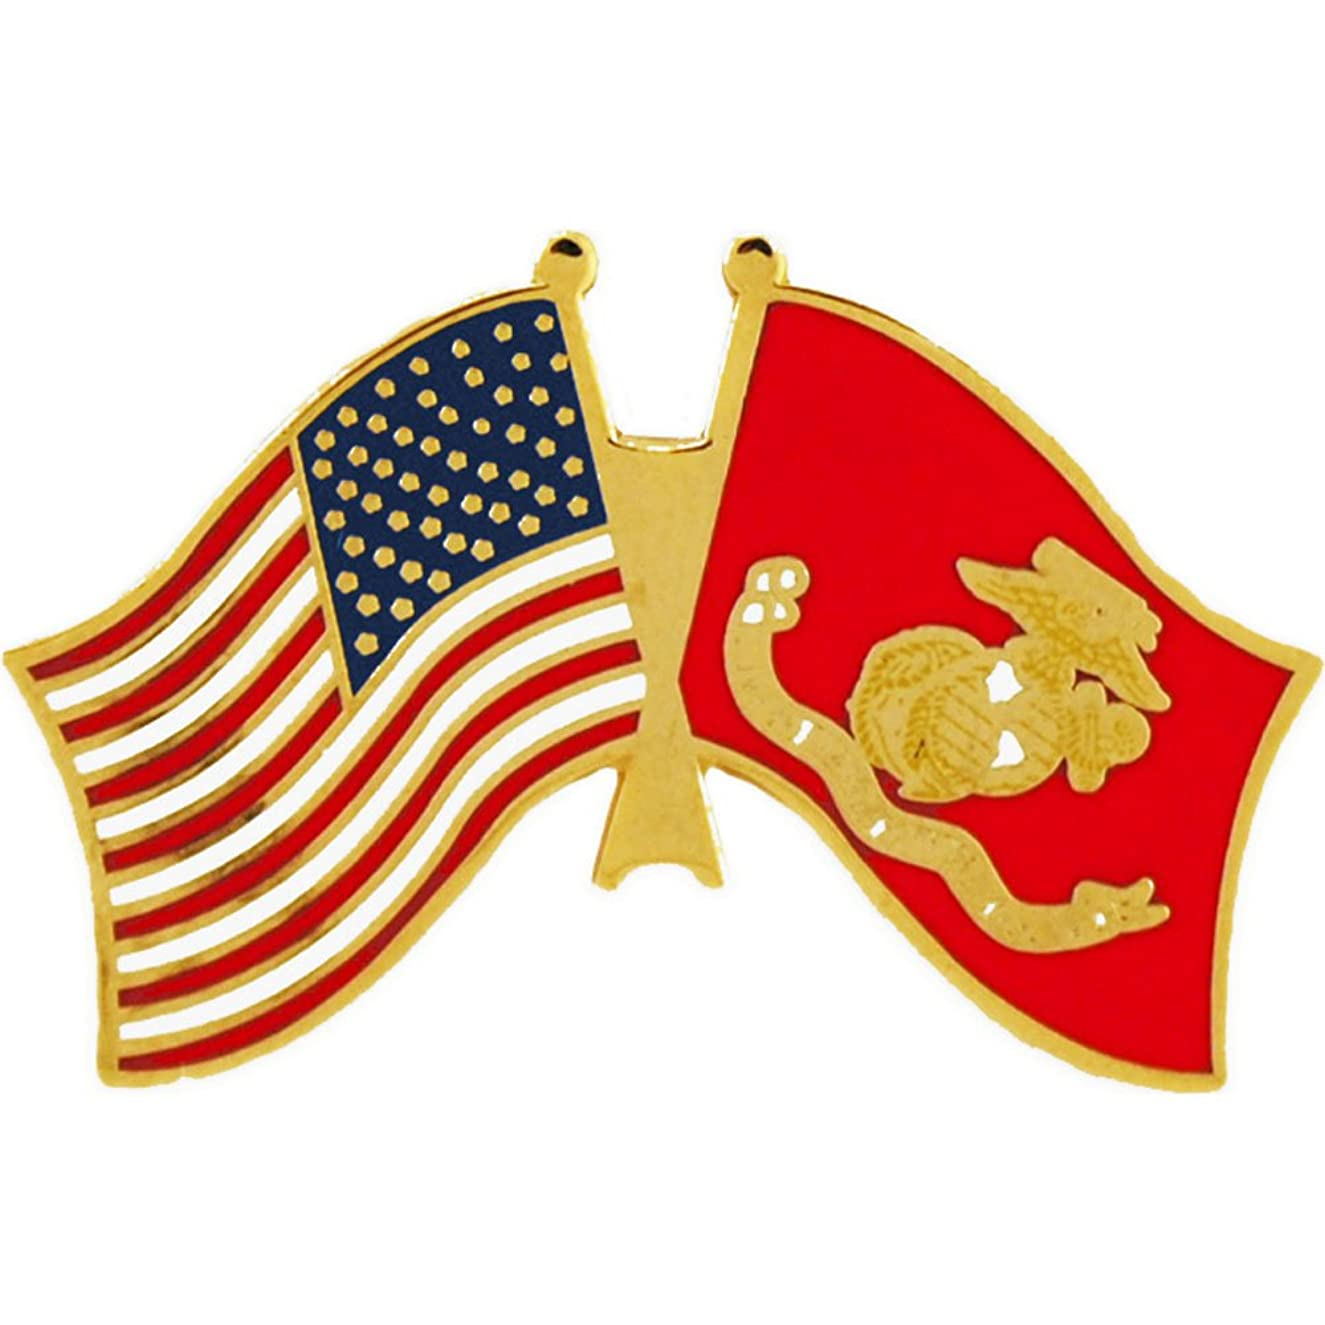 EE, Inc. United States and Marine Corps Flag Pin Military Collectibles for Men Women